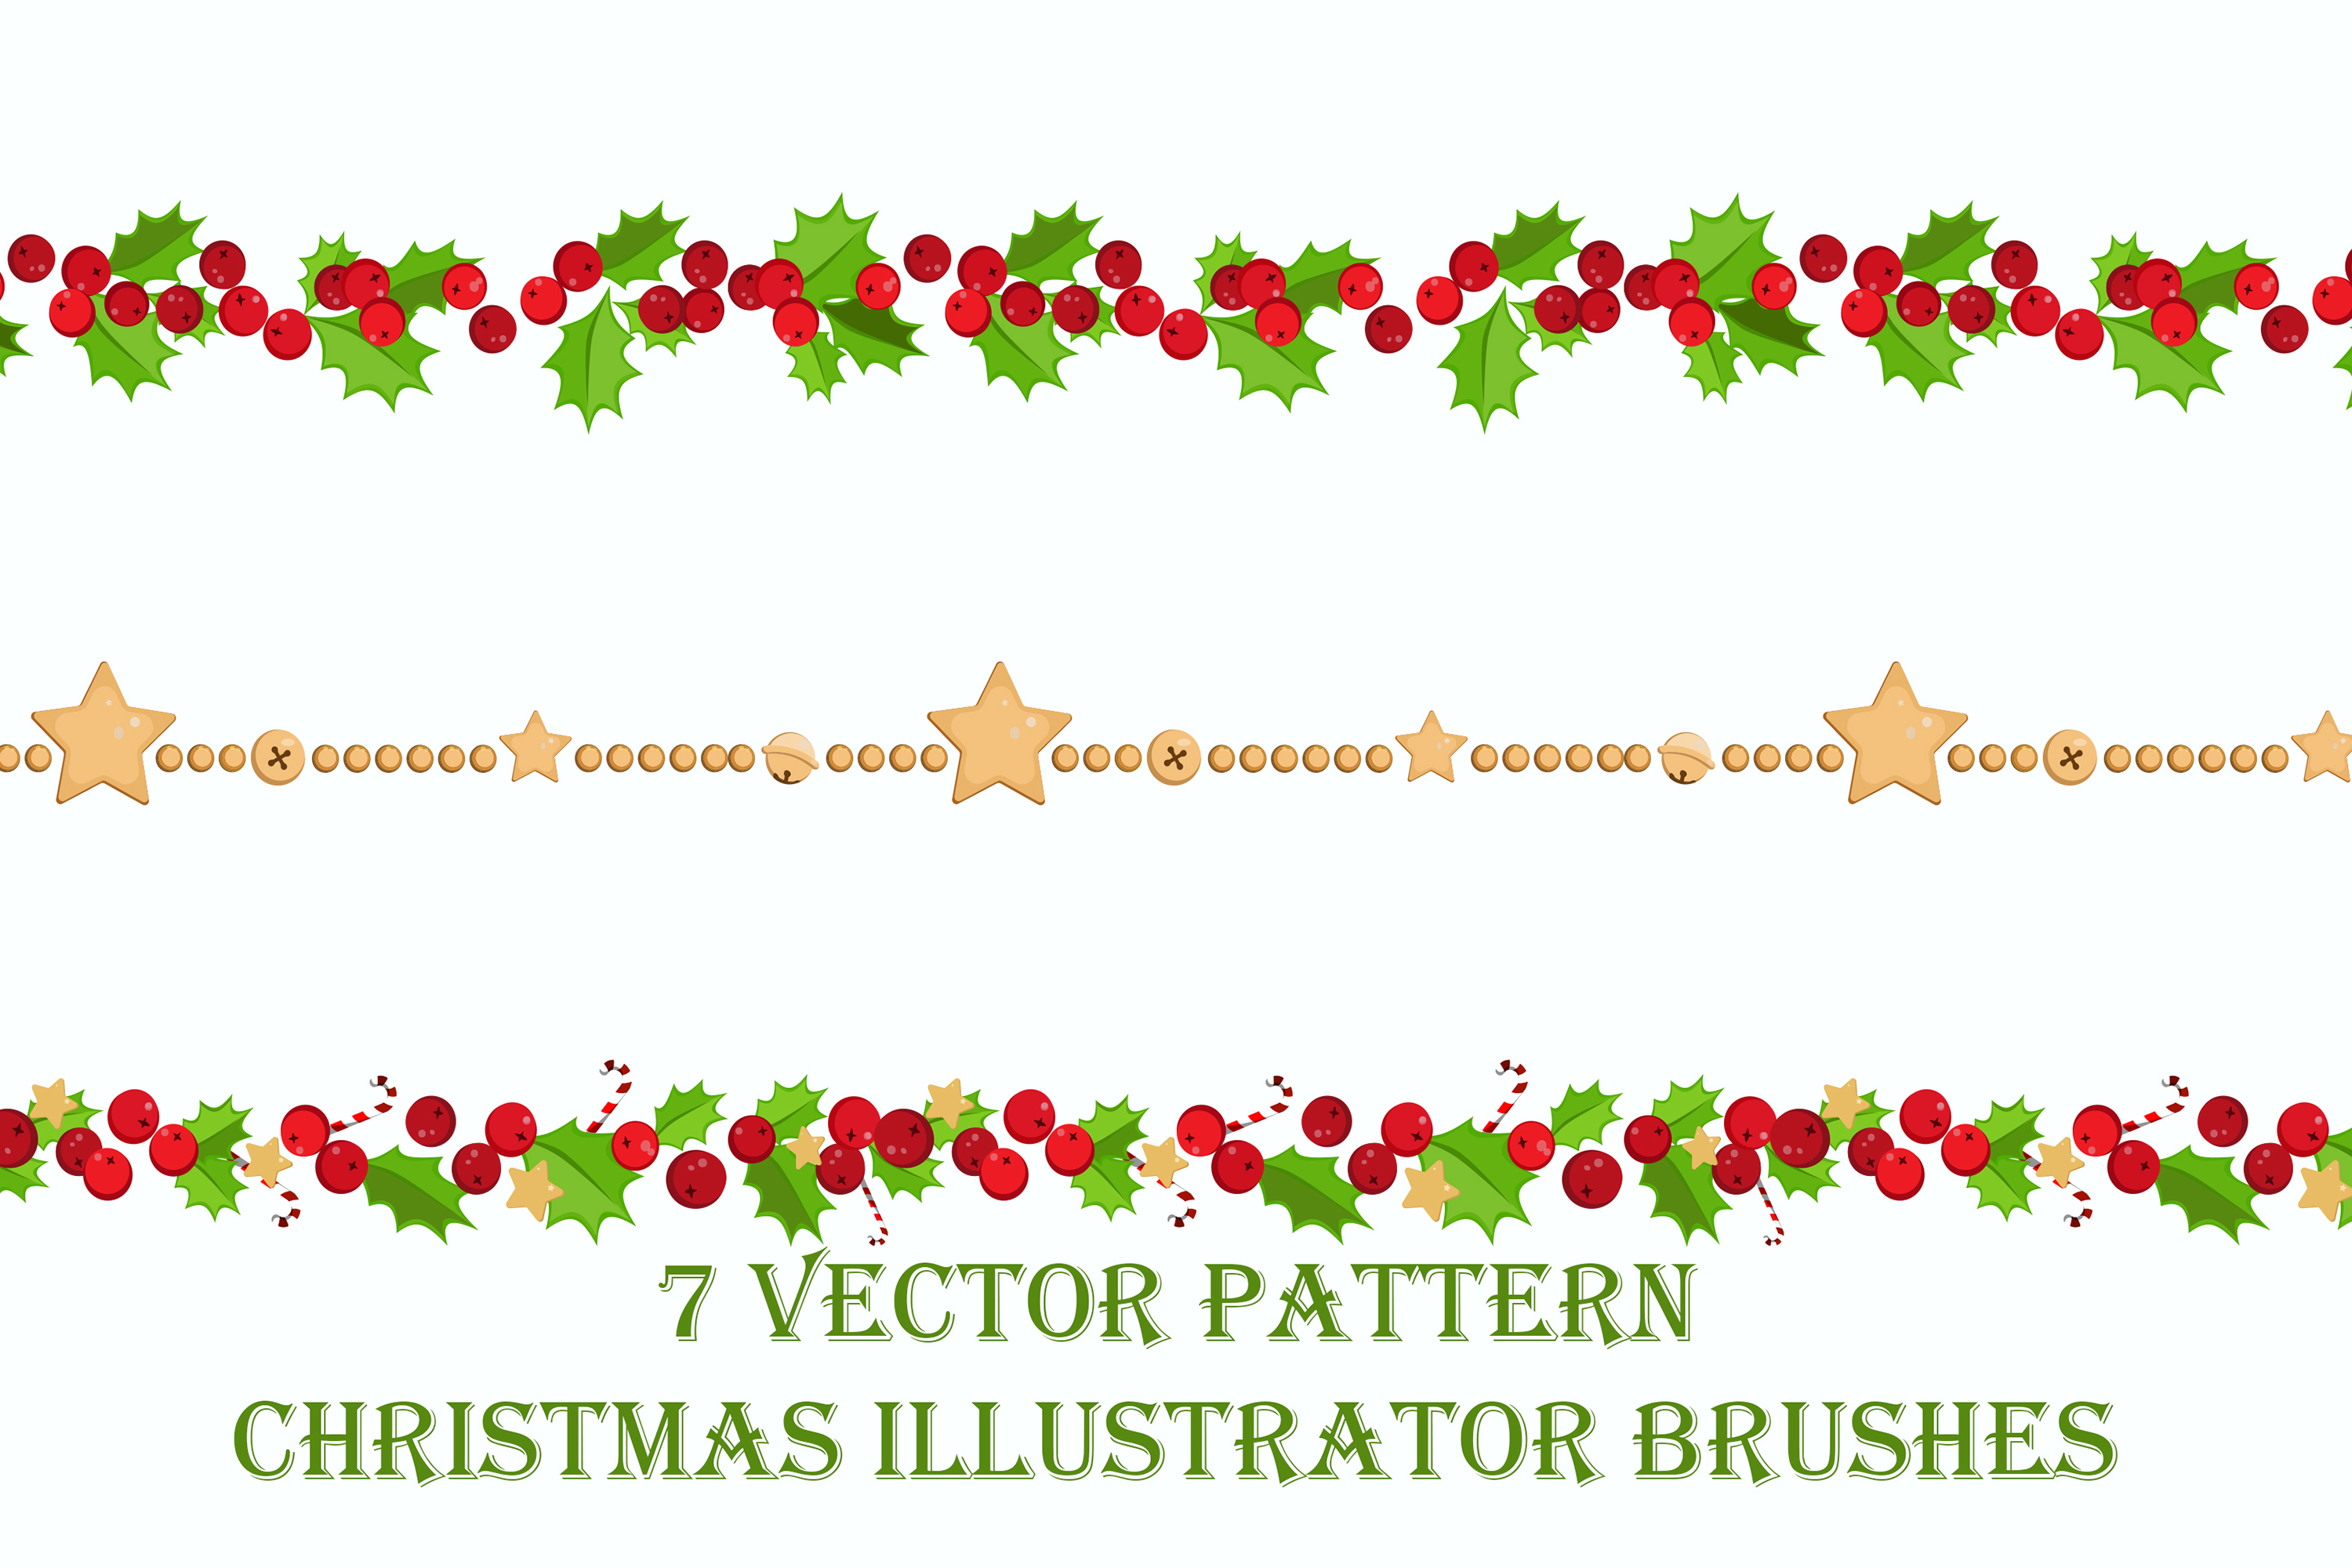 7 Vector Pattern Christmas Brushes example image 4